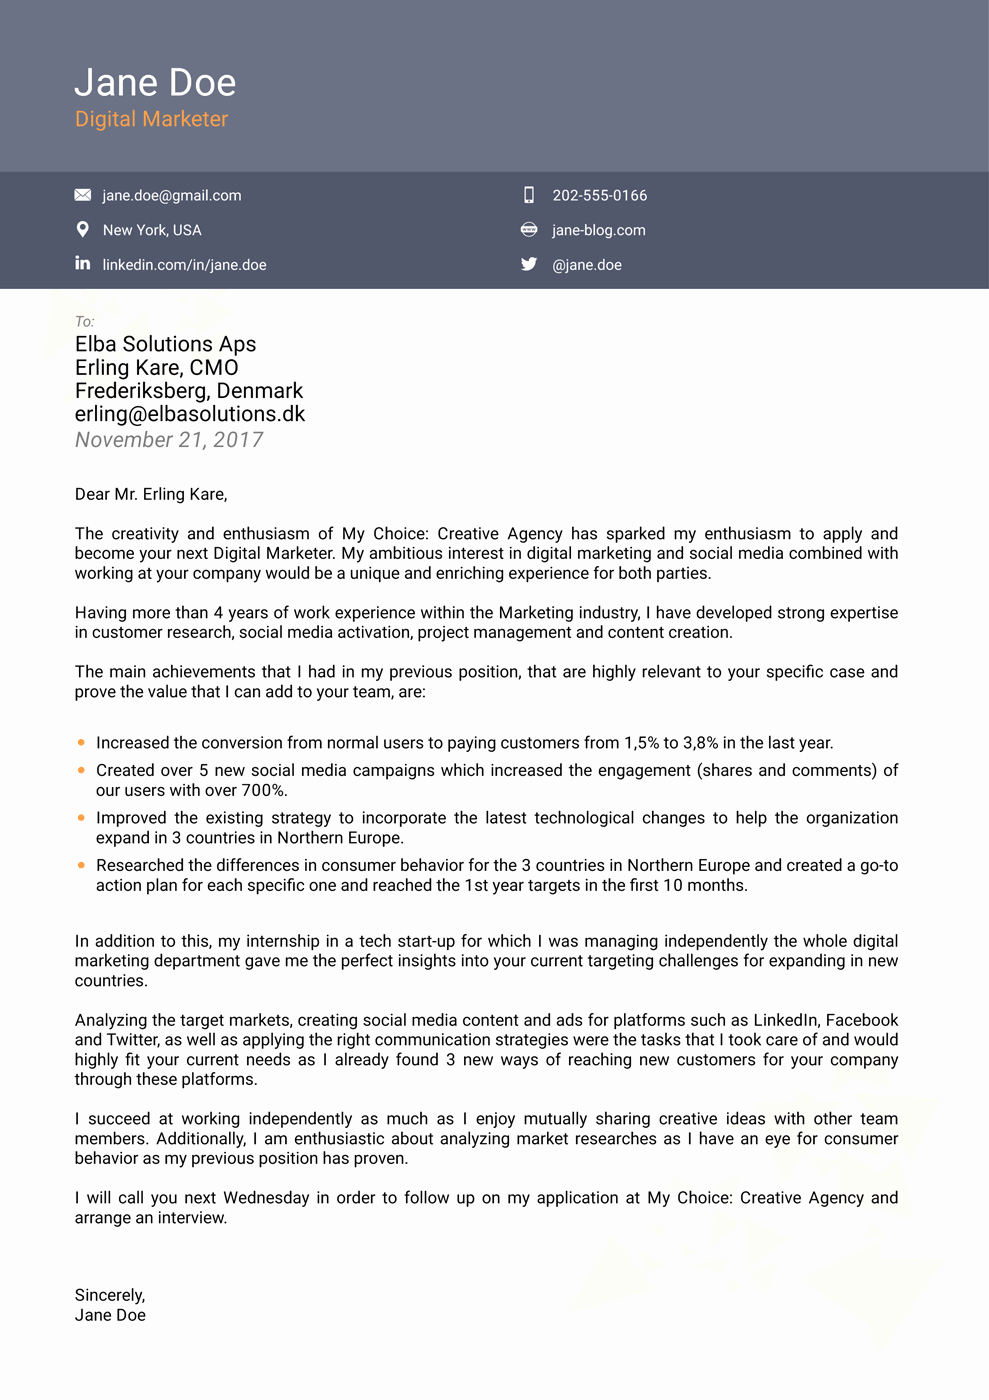 Cover Letter Template for Pages Awesome Cover Letter Templates for 2019